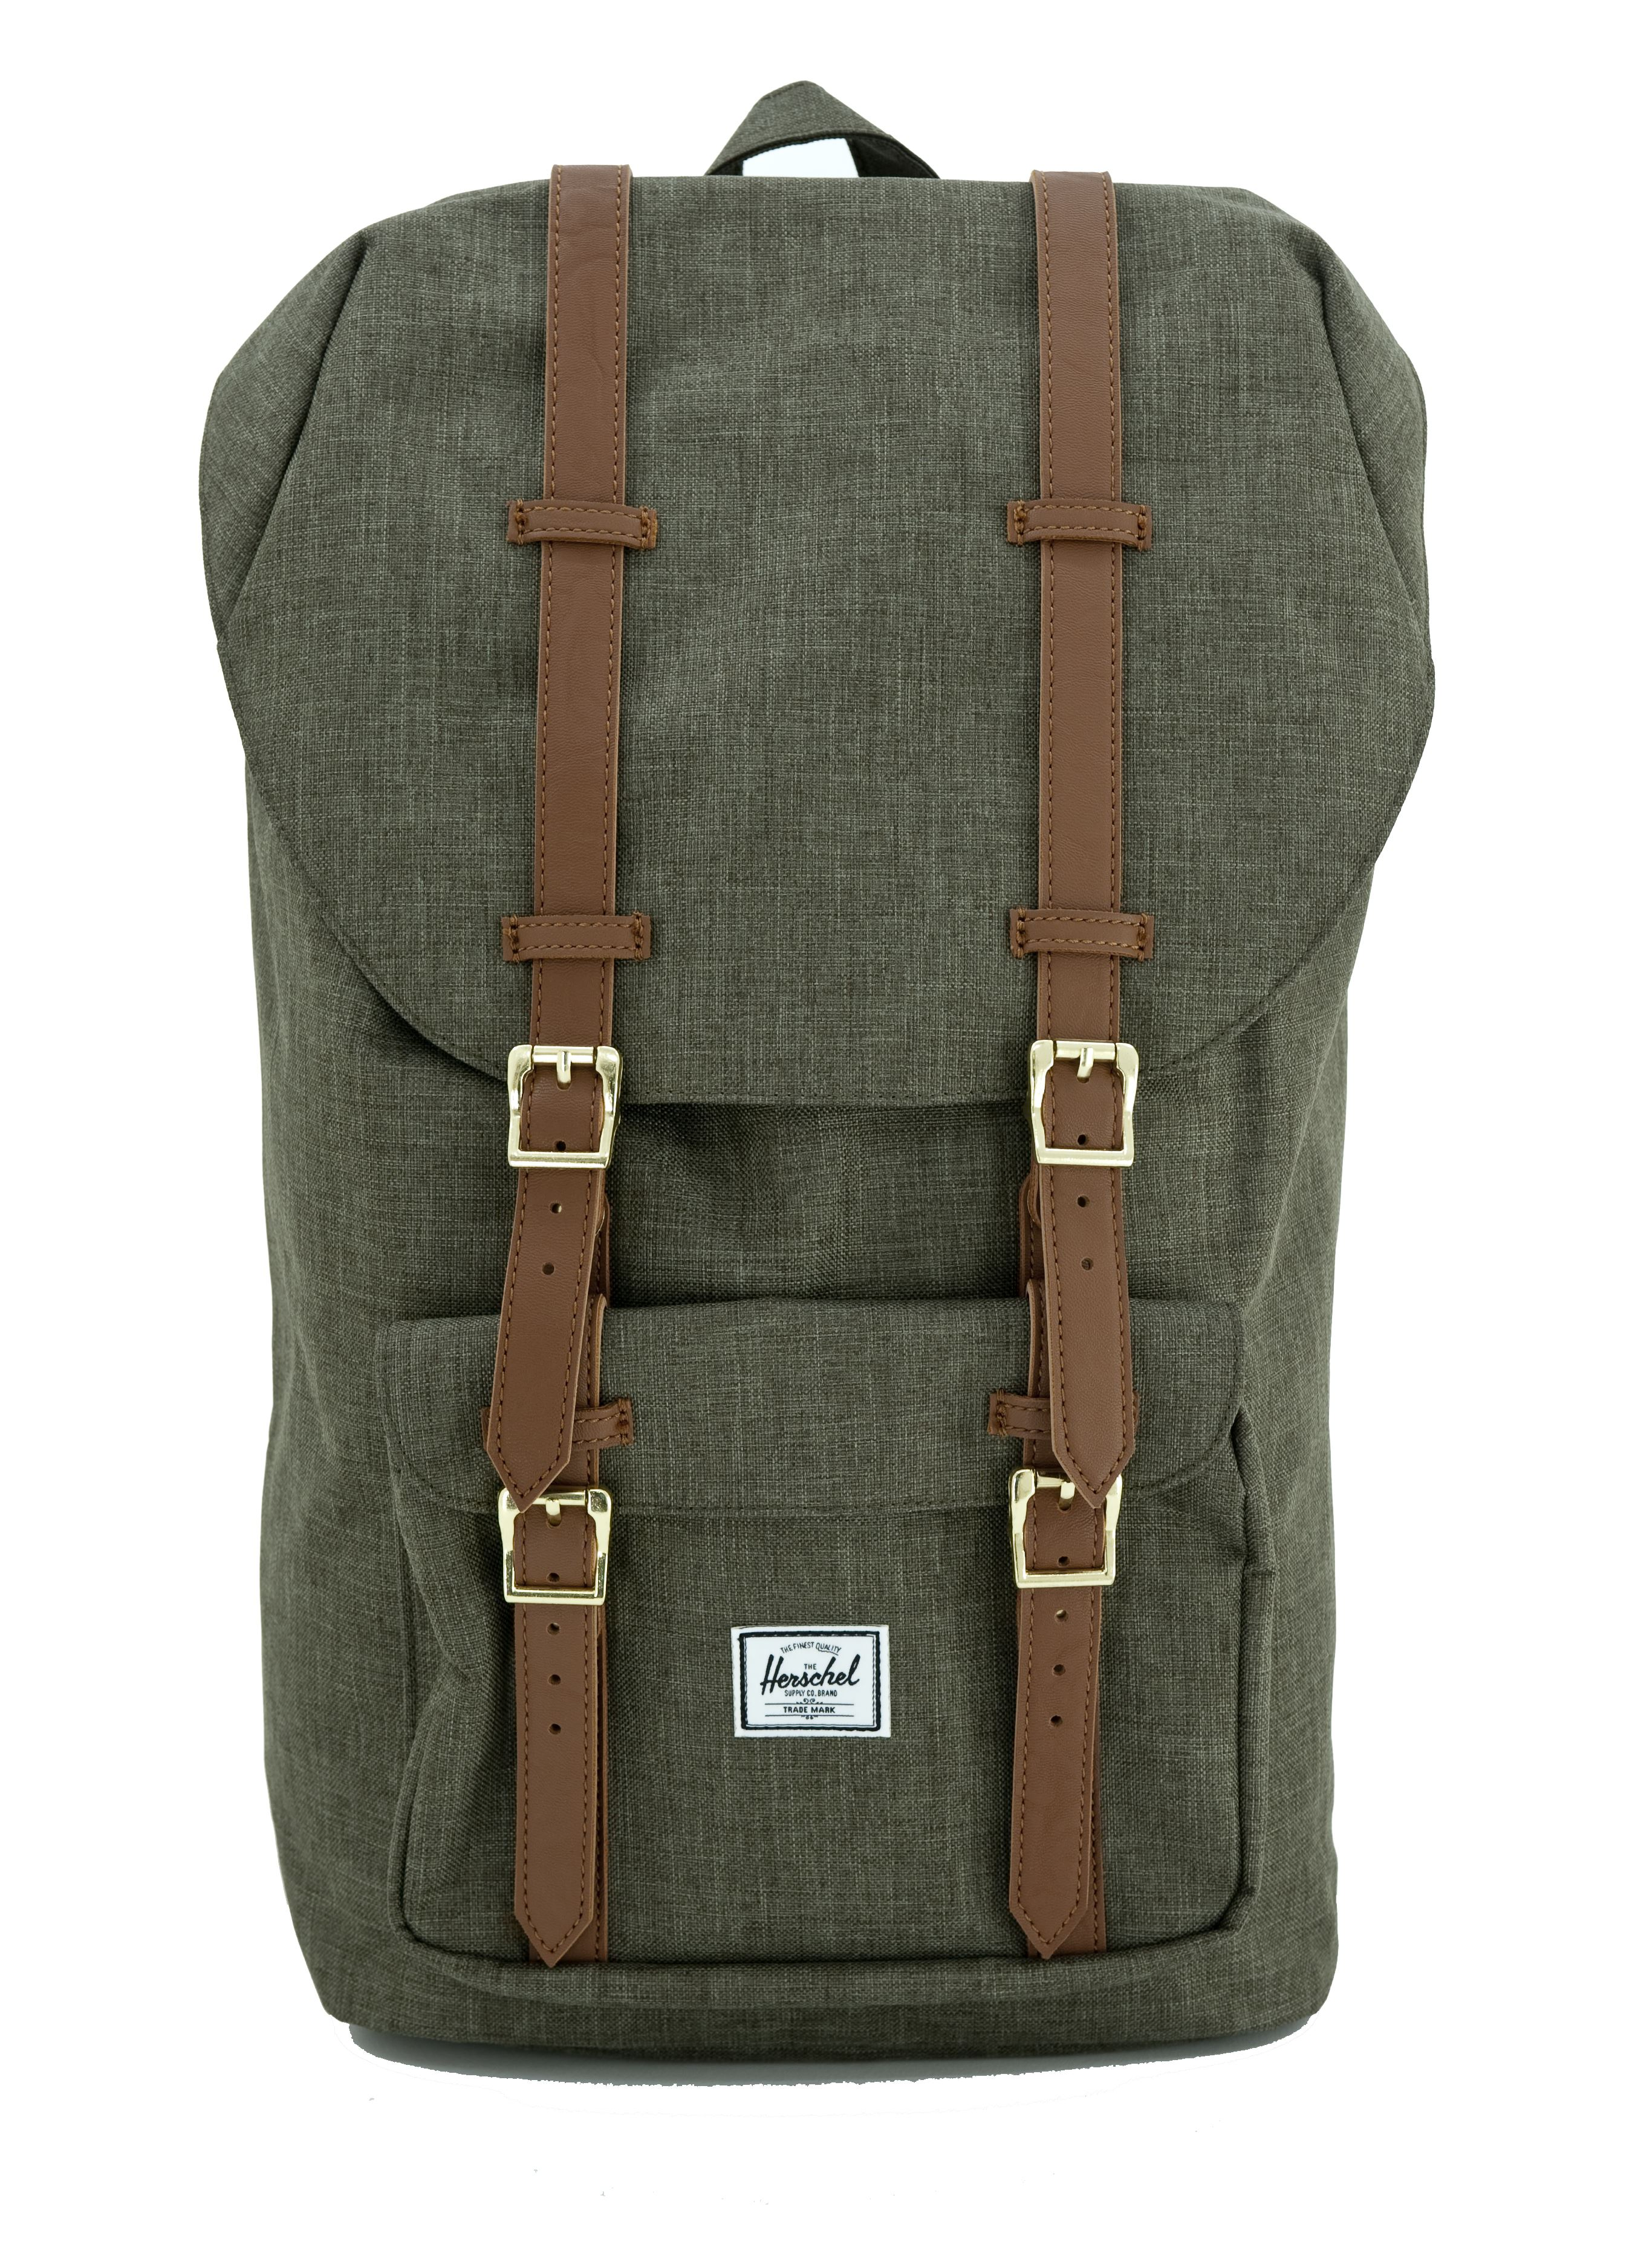 08b35746e059 Herschel little america classic color offset peacot white winds 25 ...